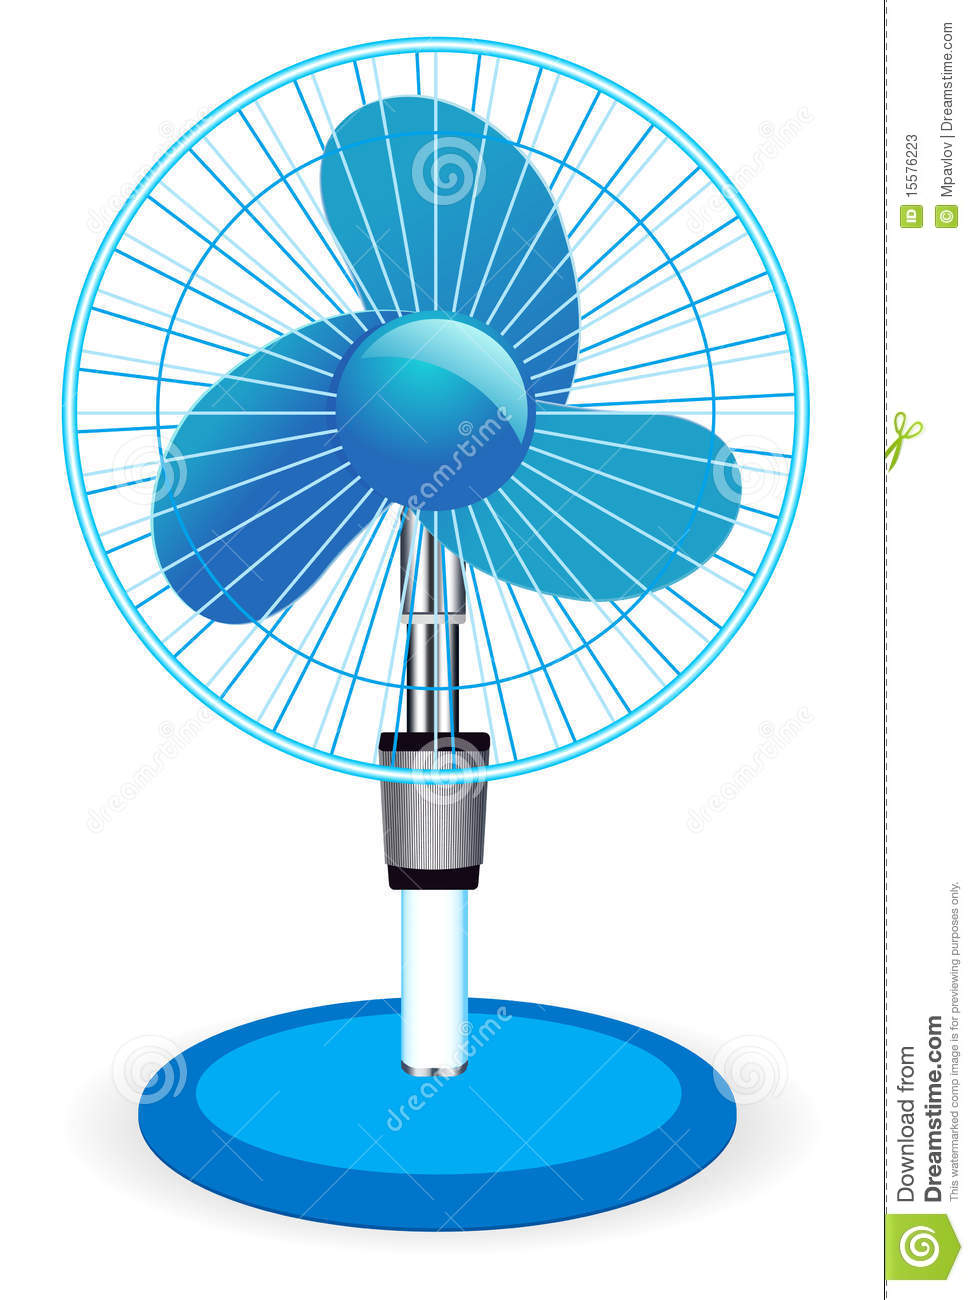 Table Fan Illustration Stock Vector Illustration Of